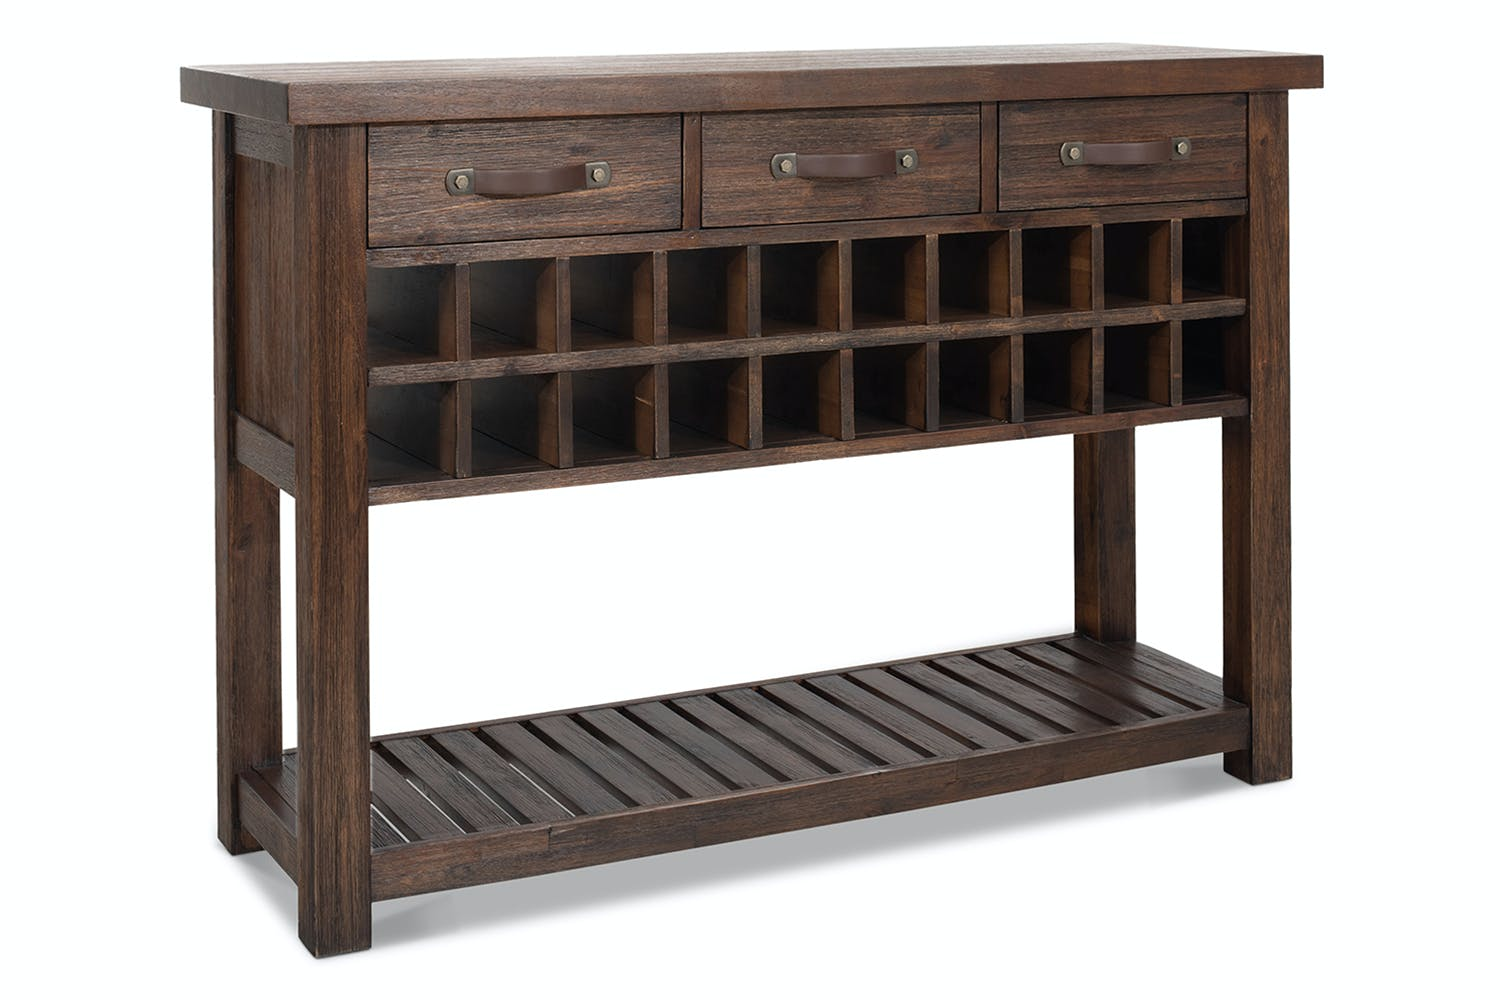 Awesome Mount Brandon Console Table Wine Rack Alphanode Cool Chair Designs And Ideas Alphanodeonline